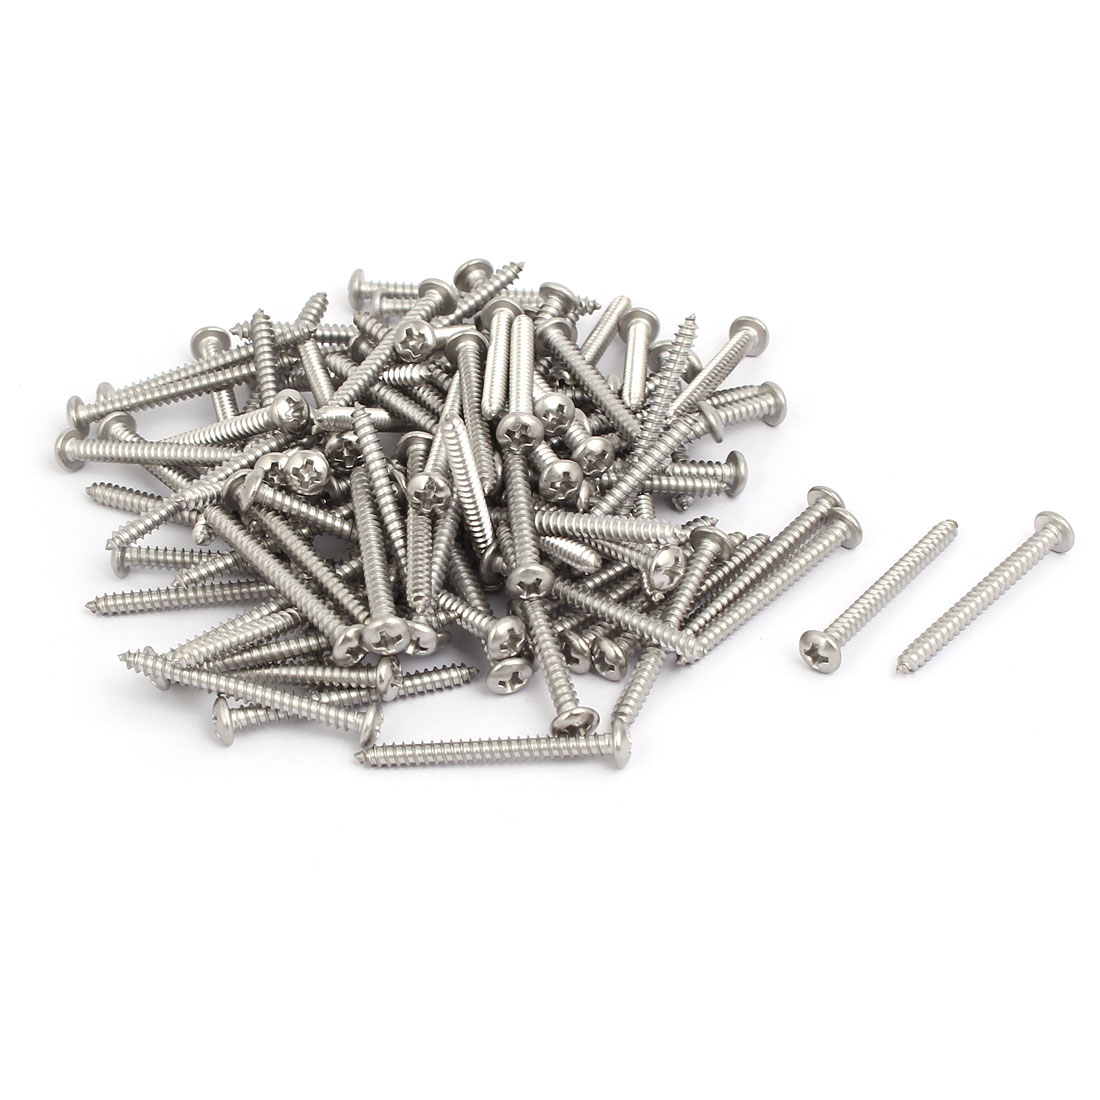 M3.5x35mm 304 Stainless Steel Phillips Round Pan Head Self Tapping Screws 150pcs